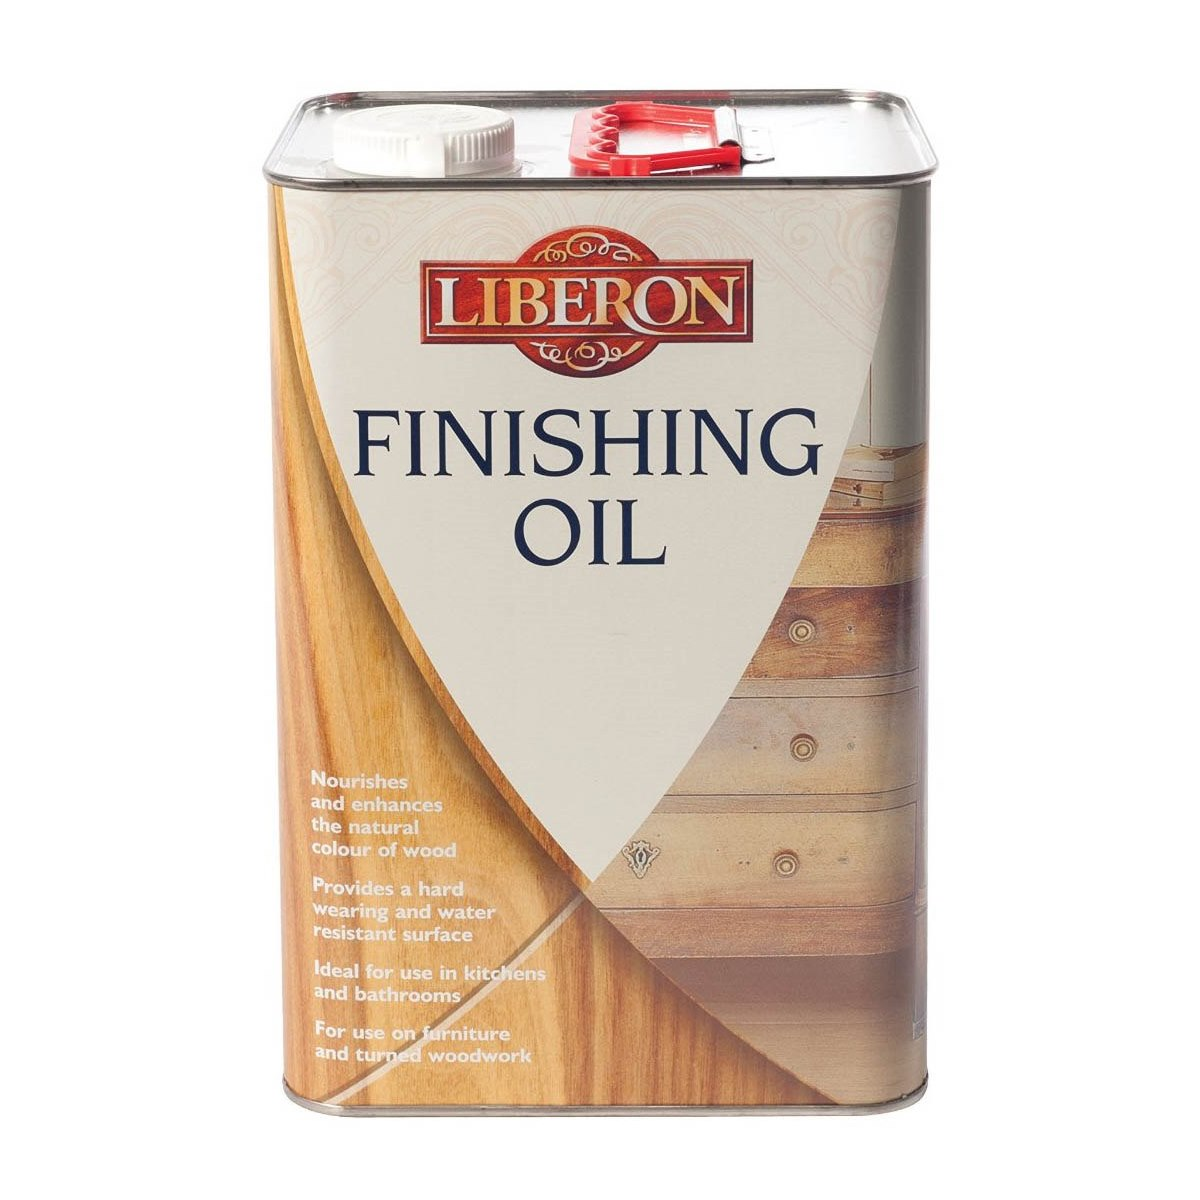 Liberon Finishing Oil 5 Litre